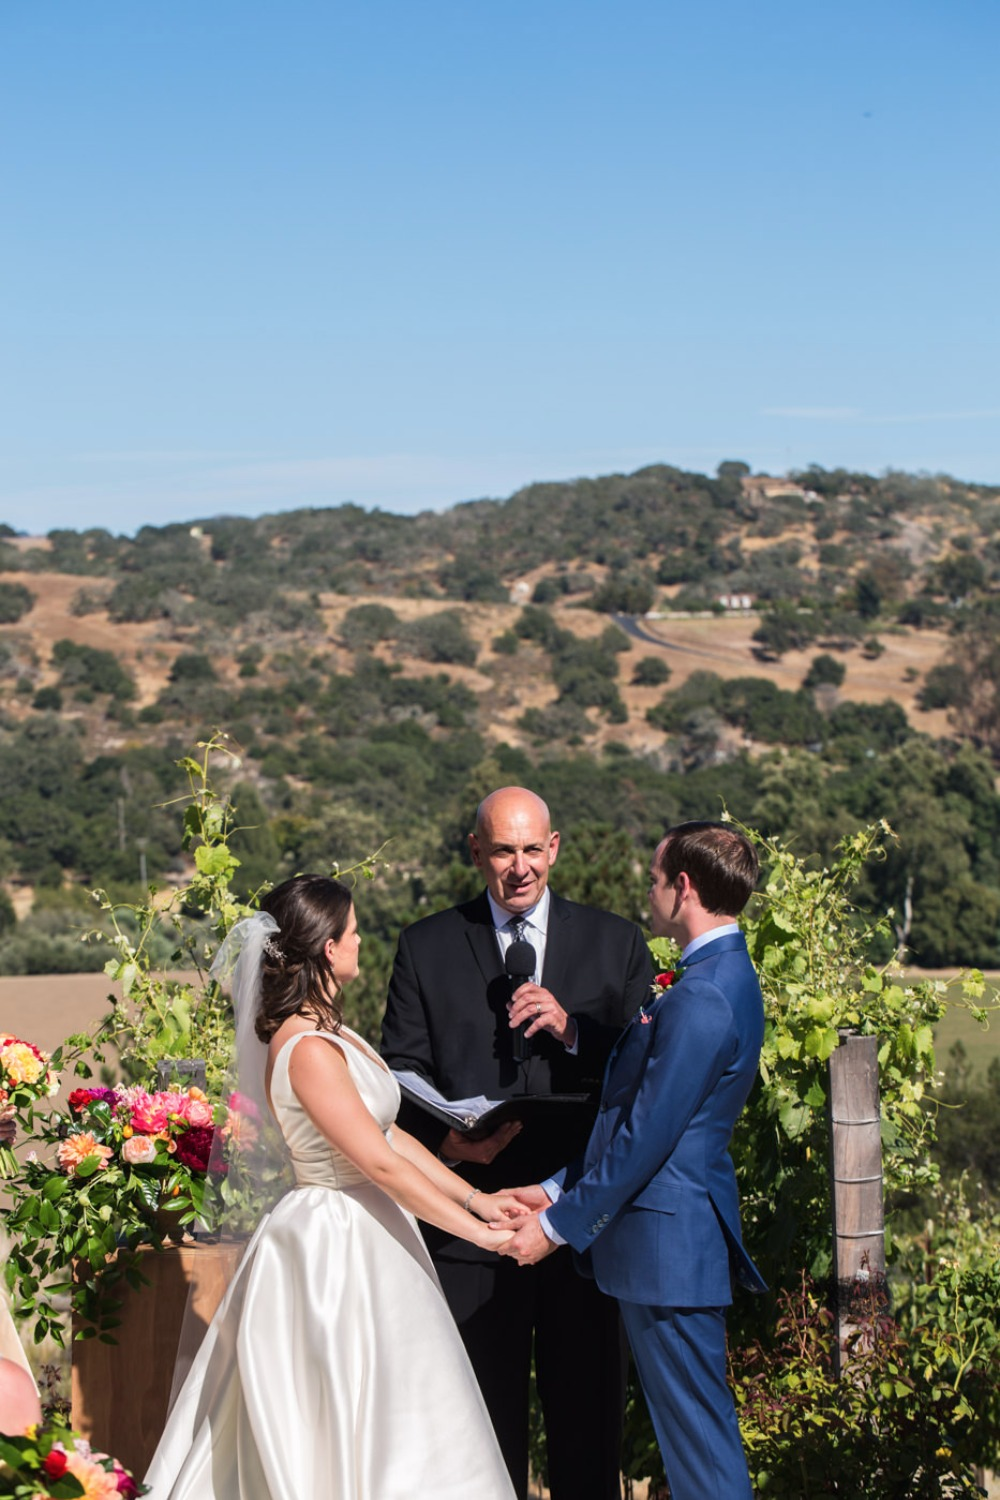 Outdoor ceremony in California